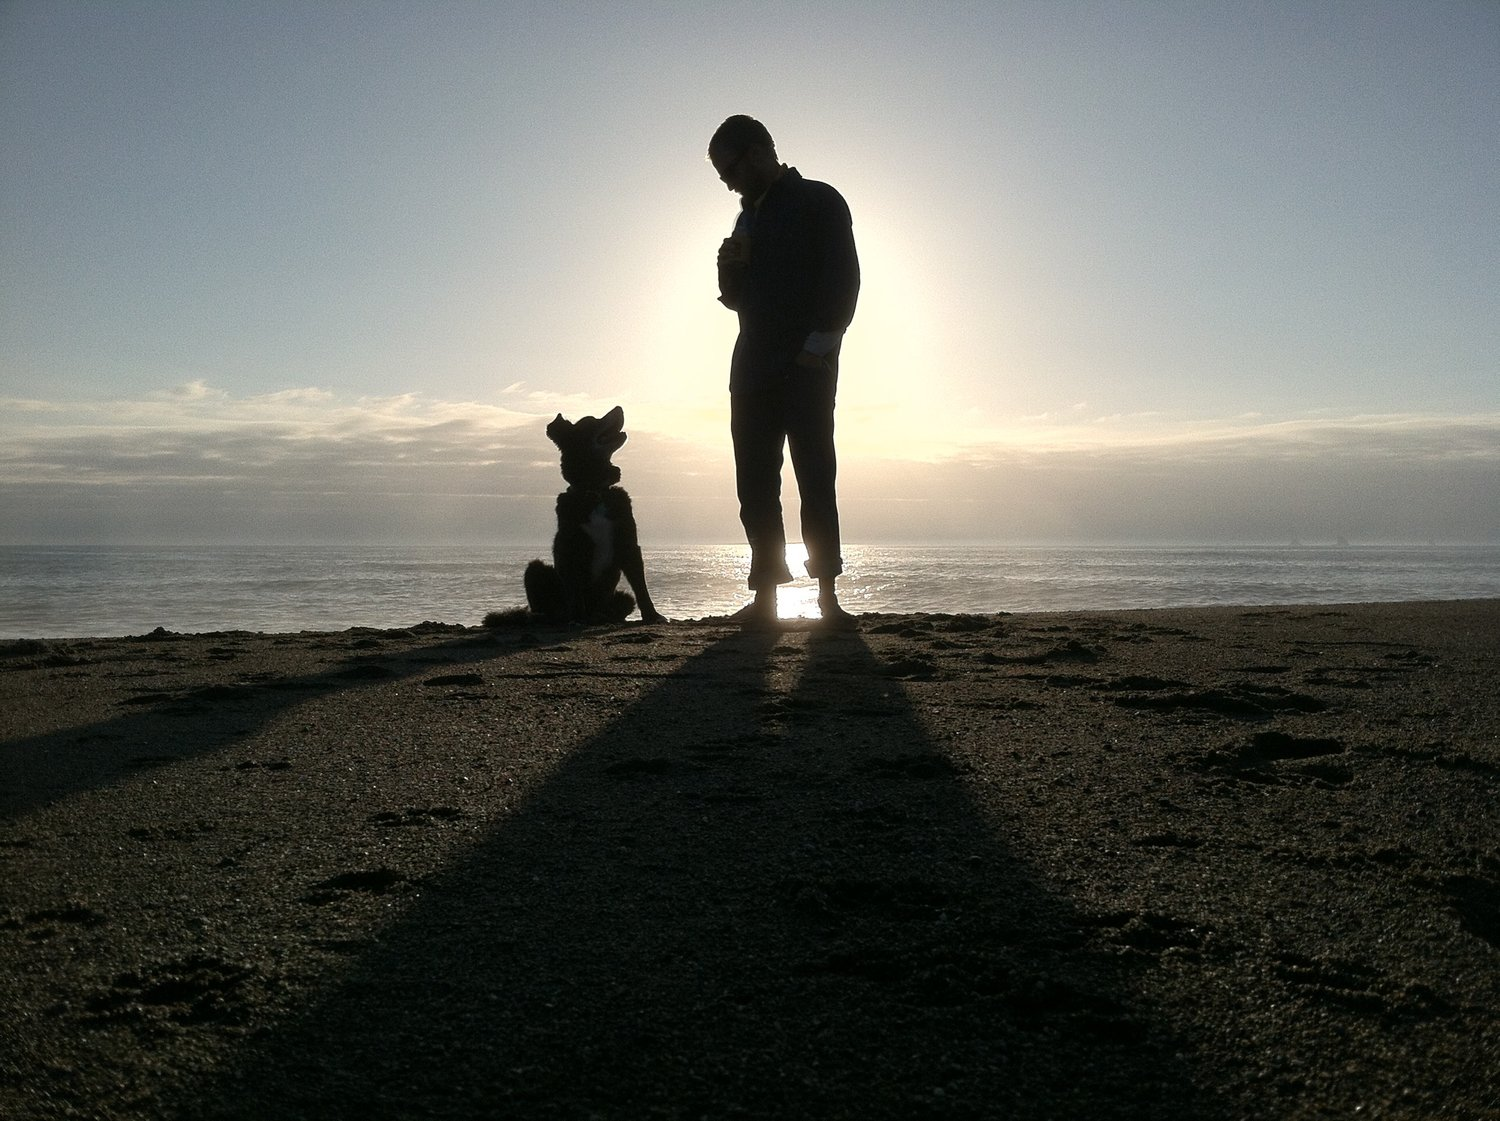 dan kirk and his dog on beach at sunset